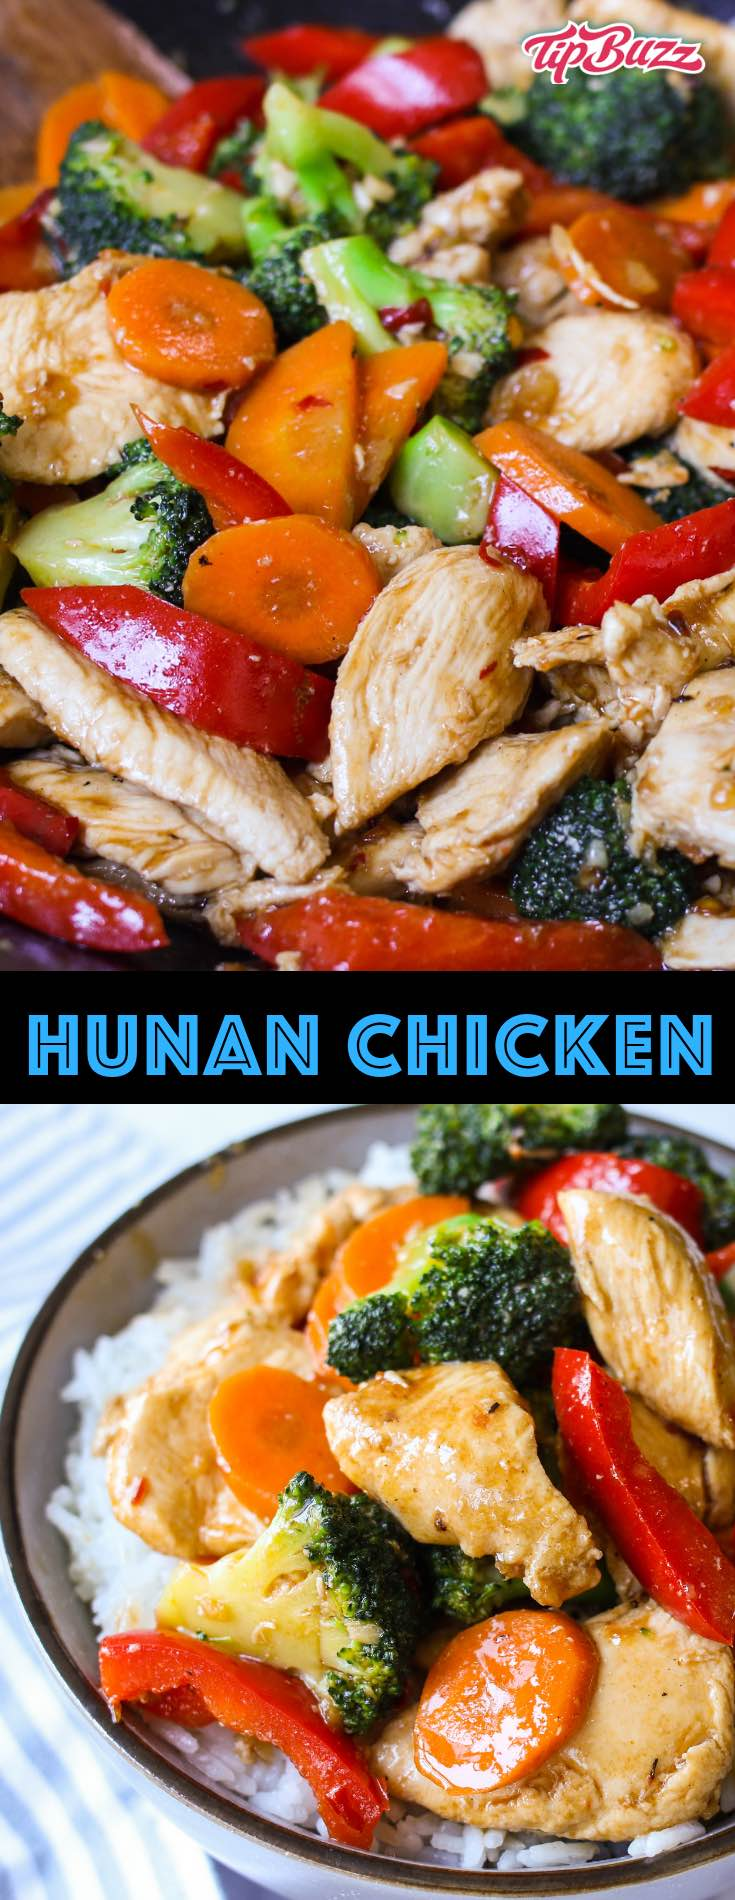 Hunan Chicken is a delicious dish of Chinese chicken and broccoli seasoned with garlic, ginger, soy sauce and doubanjiang, or spicy fermented chili bean paste